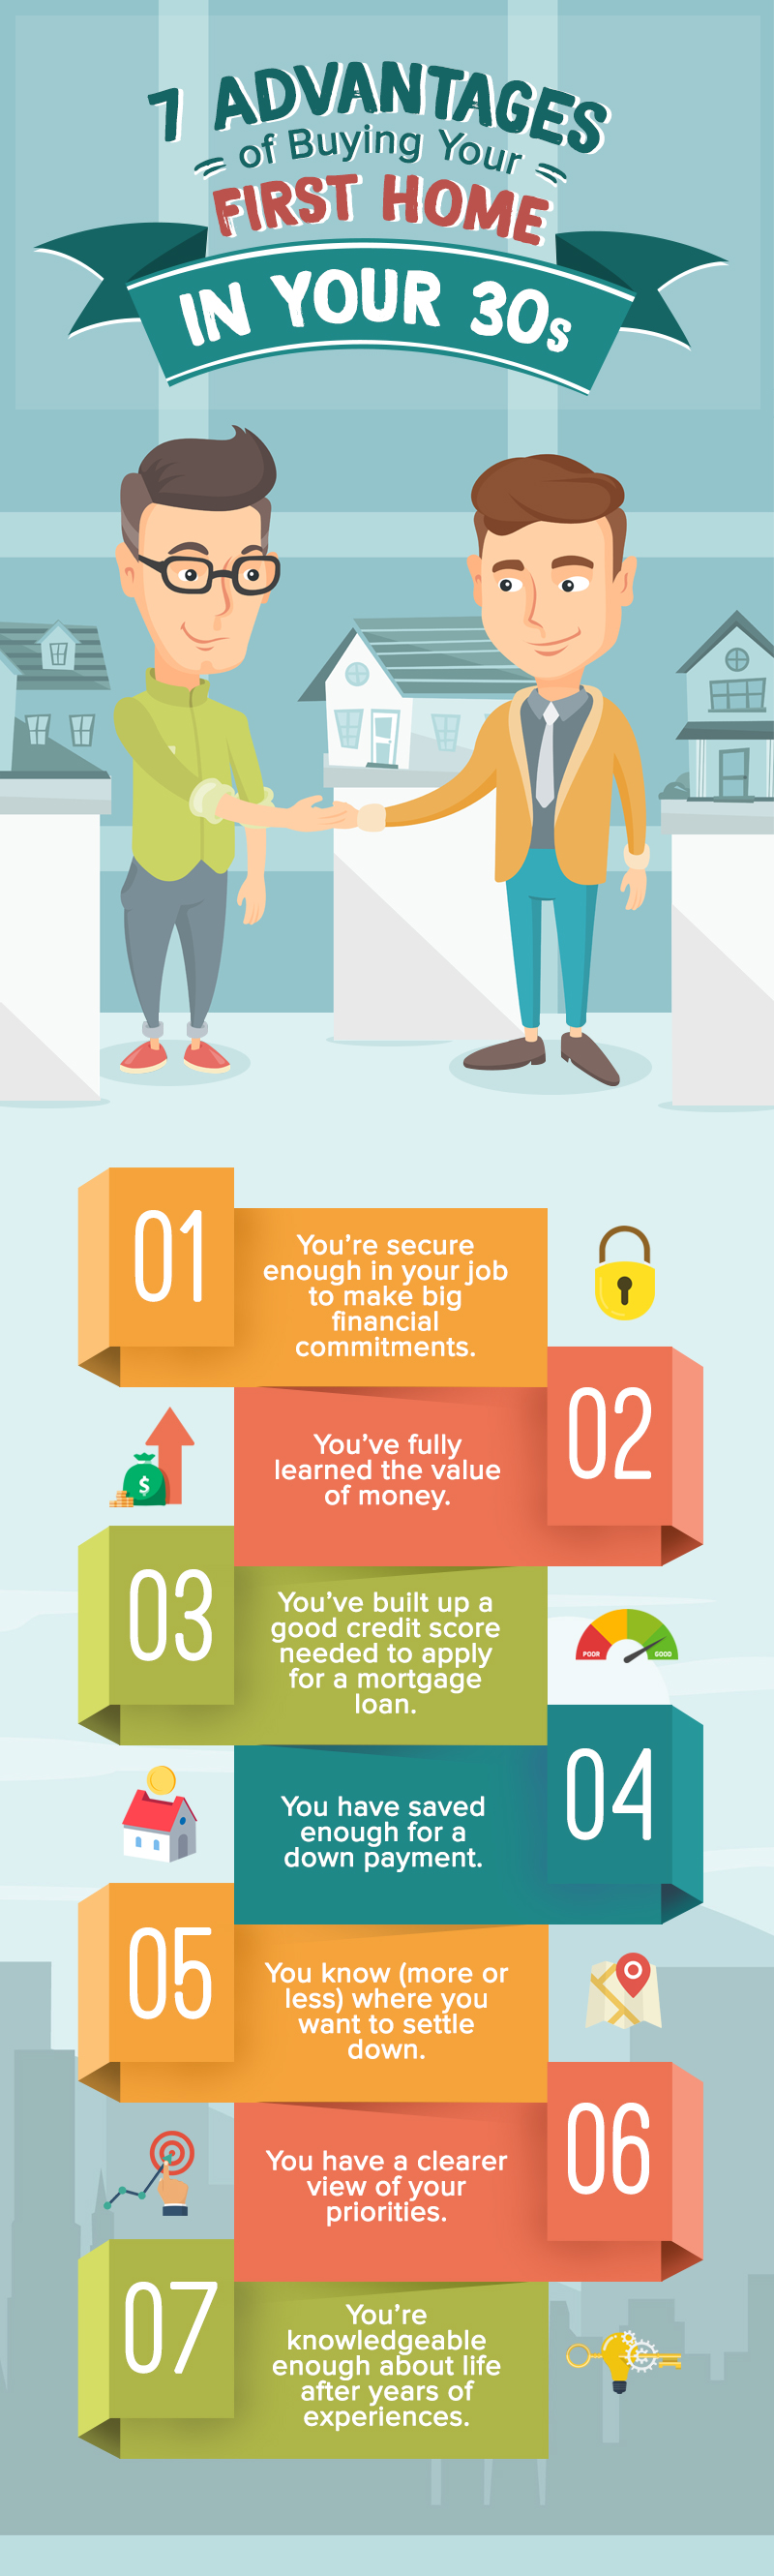 7 Advantages of Buying Your First Home in Your 30s